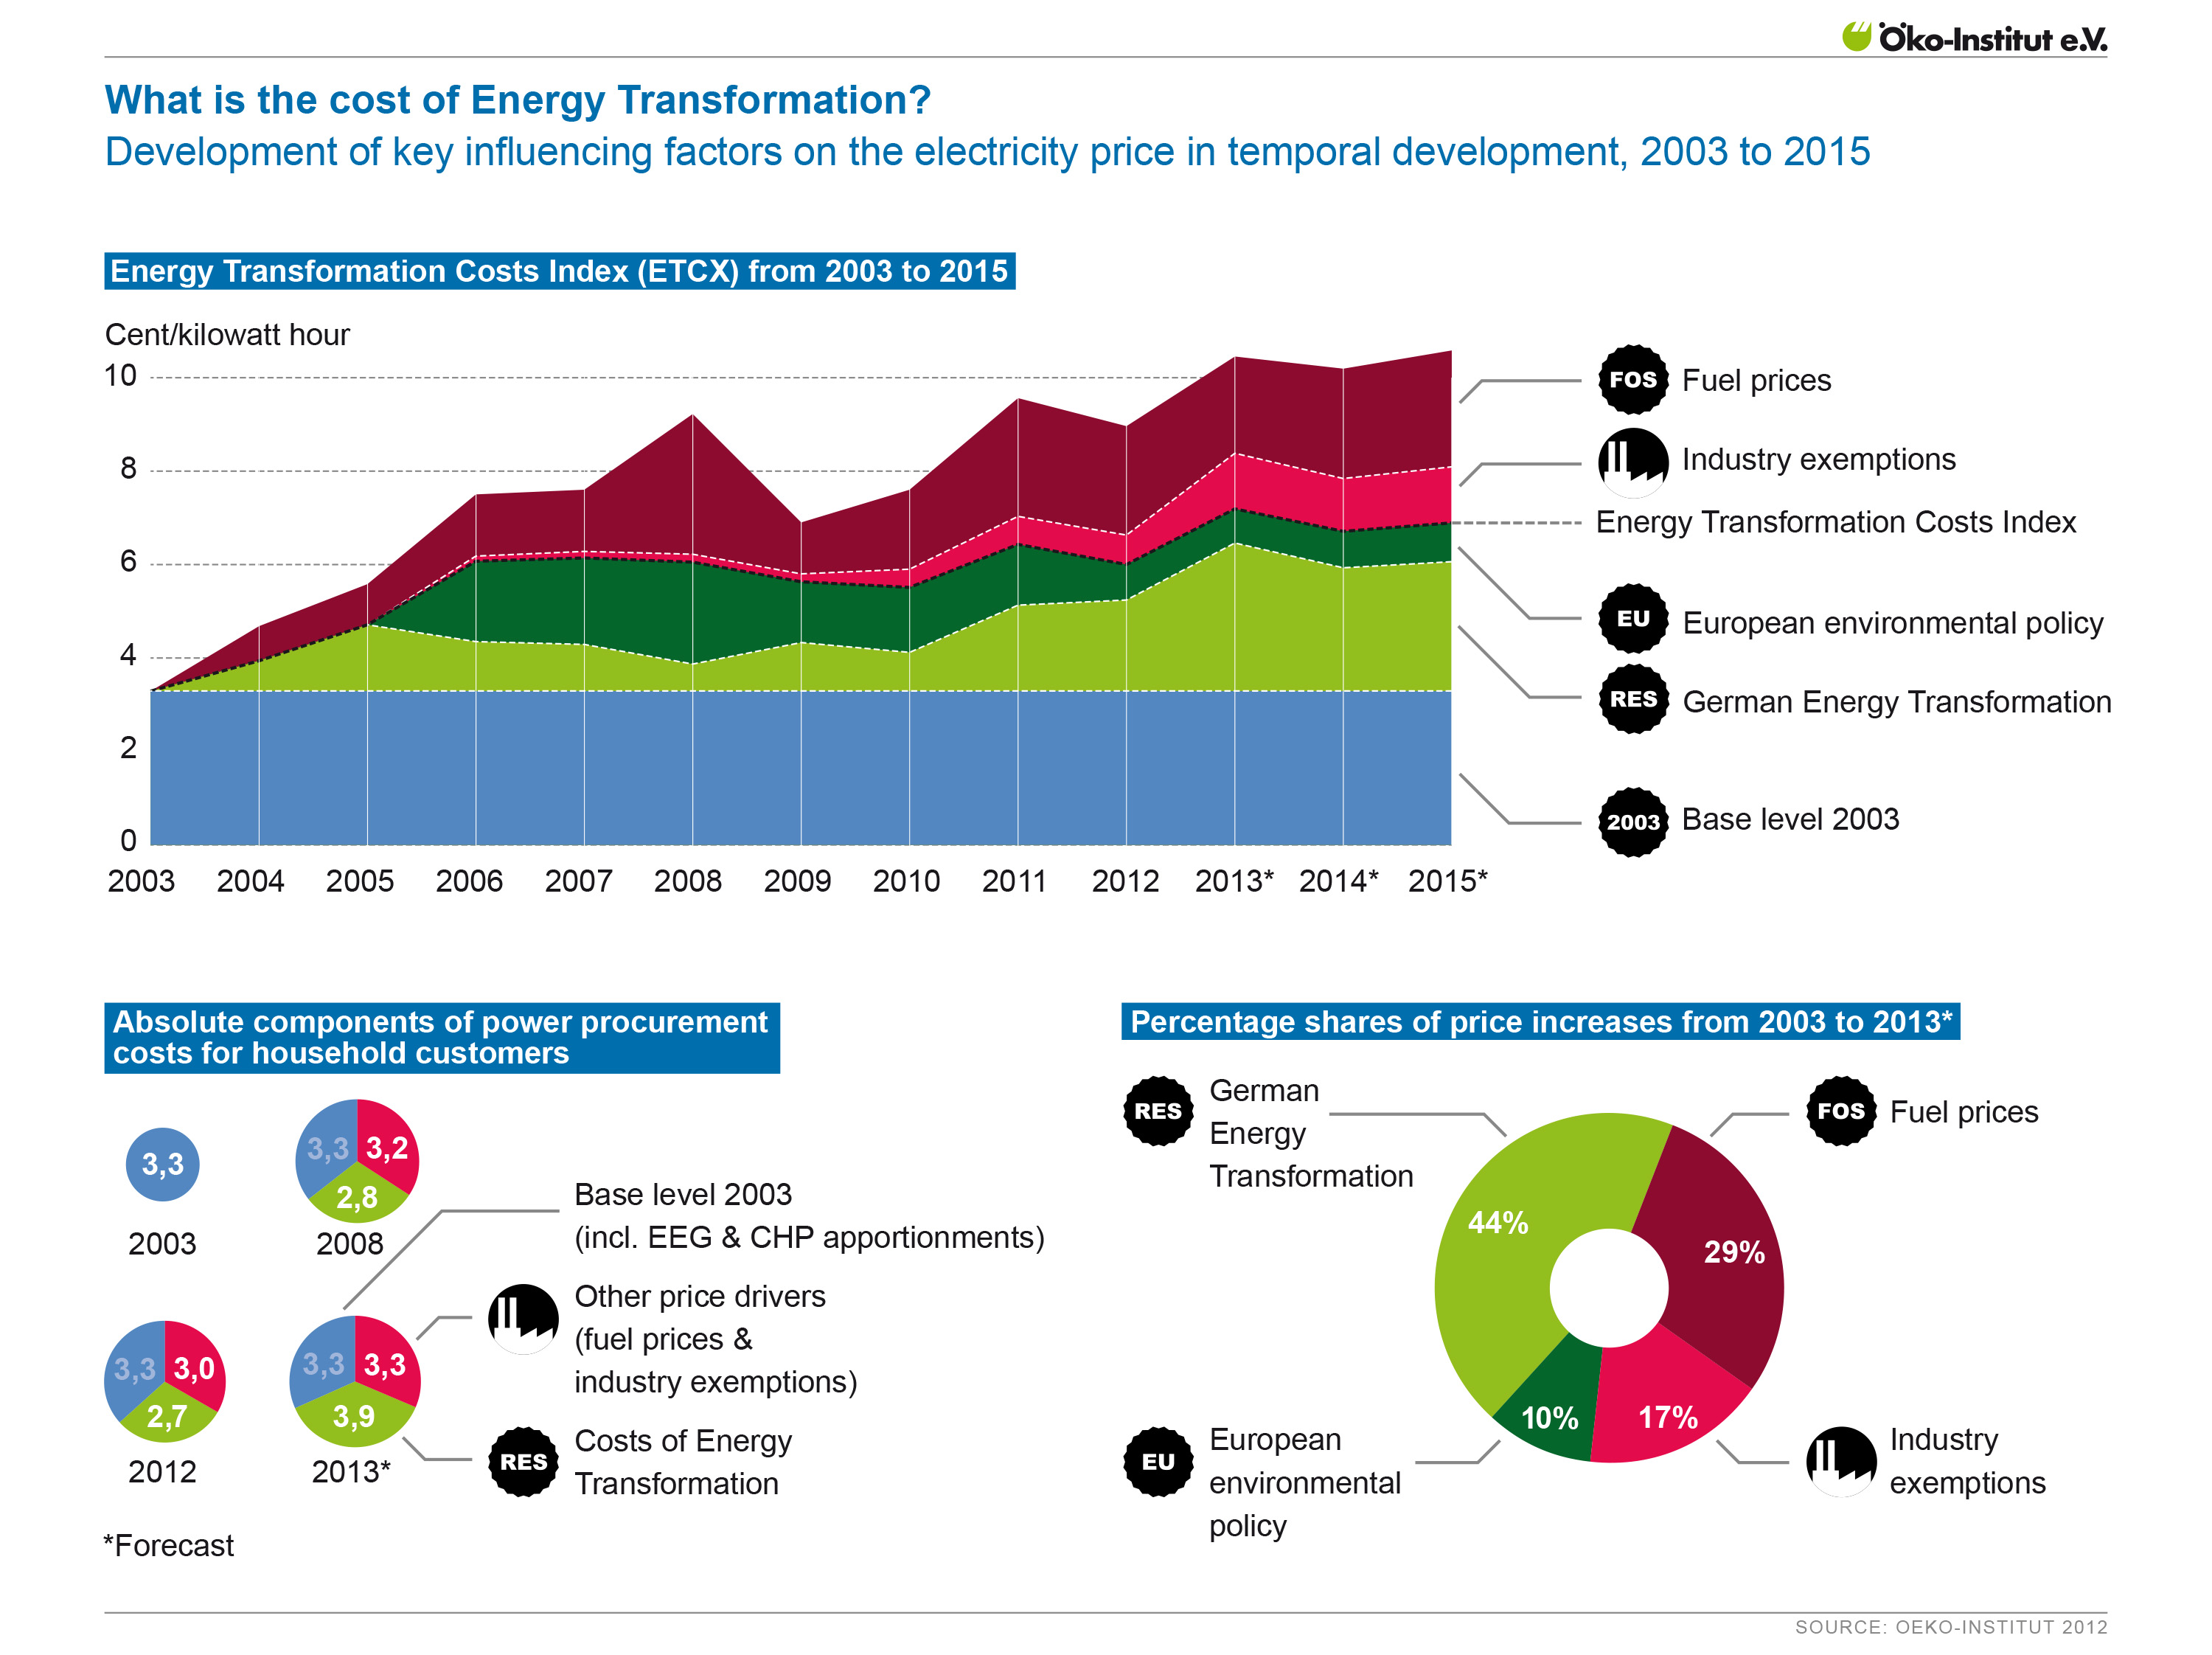 How Germany takes renewable energy transformation into account